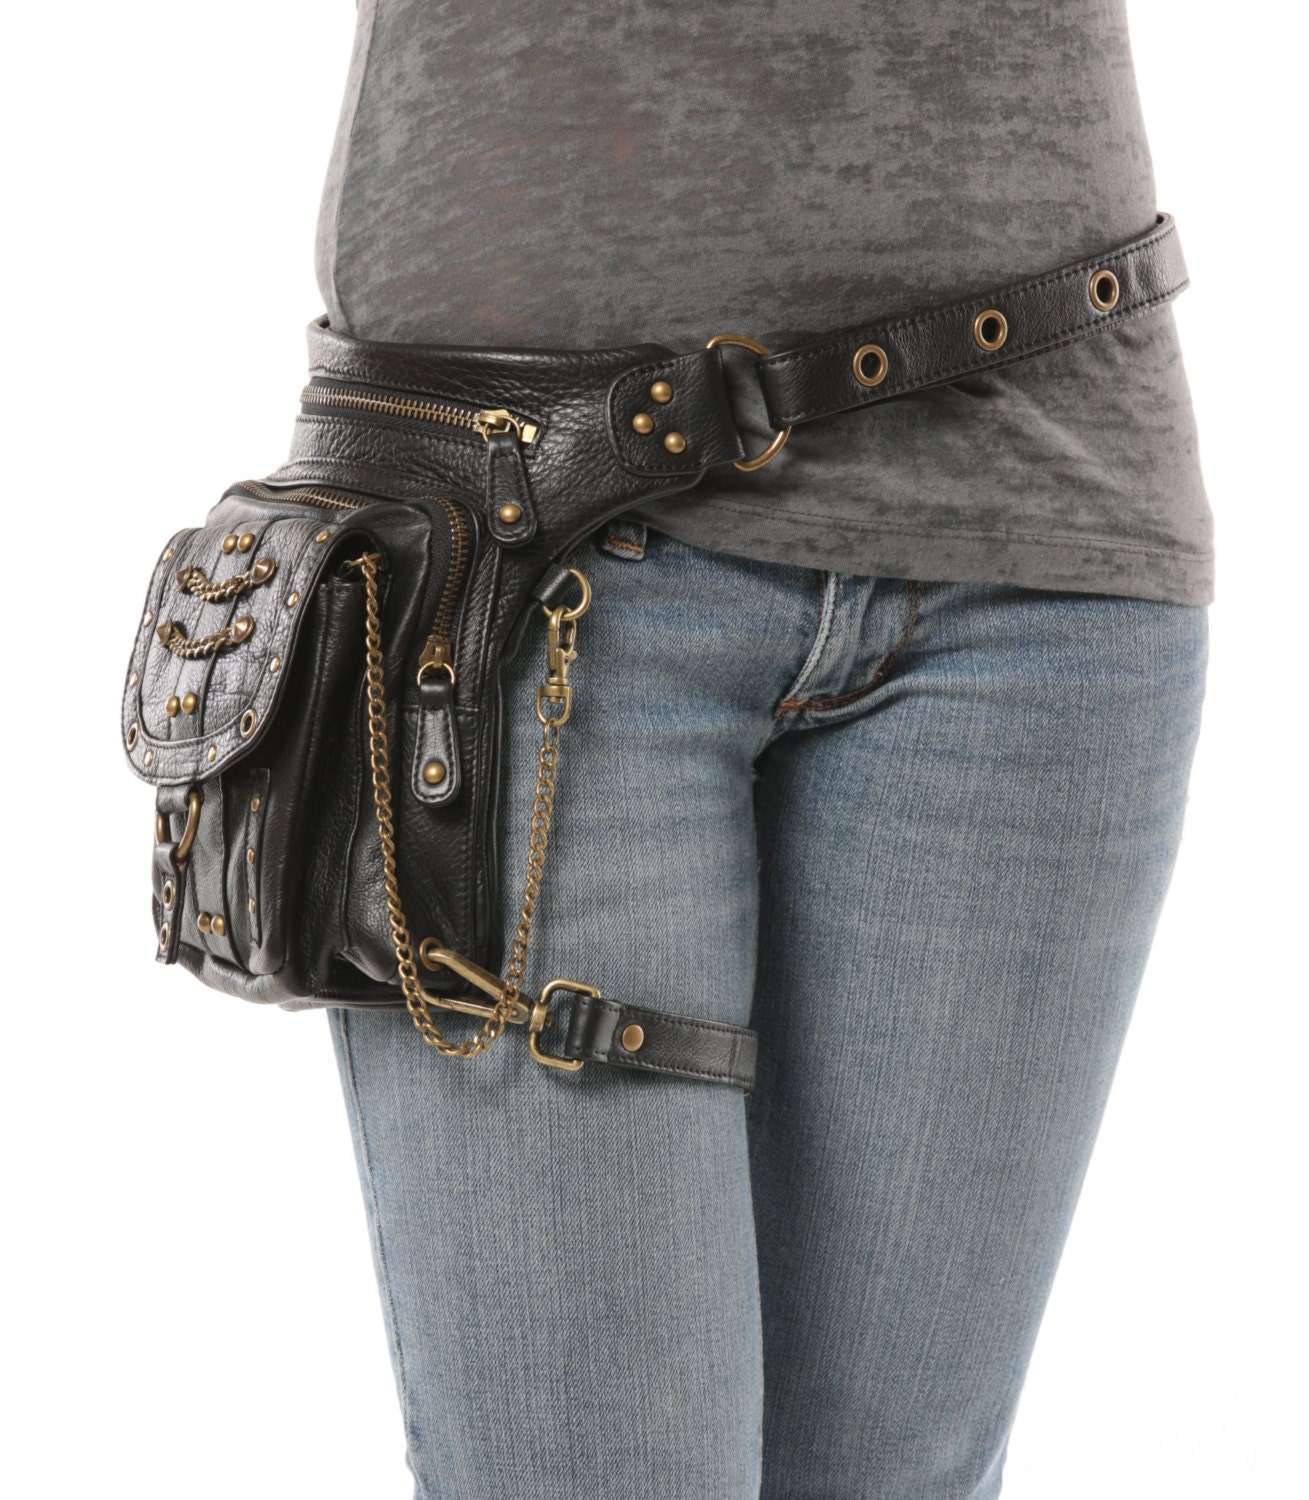 Underground Pack Black Thigh Holster Protected Purse